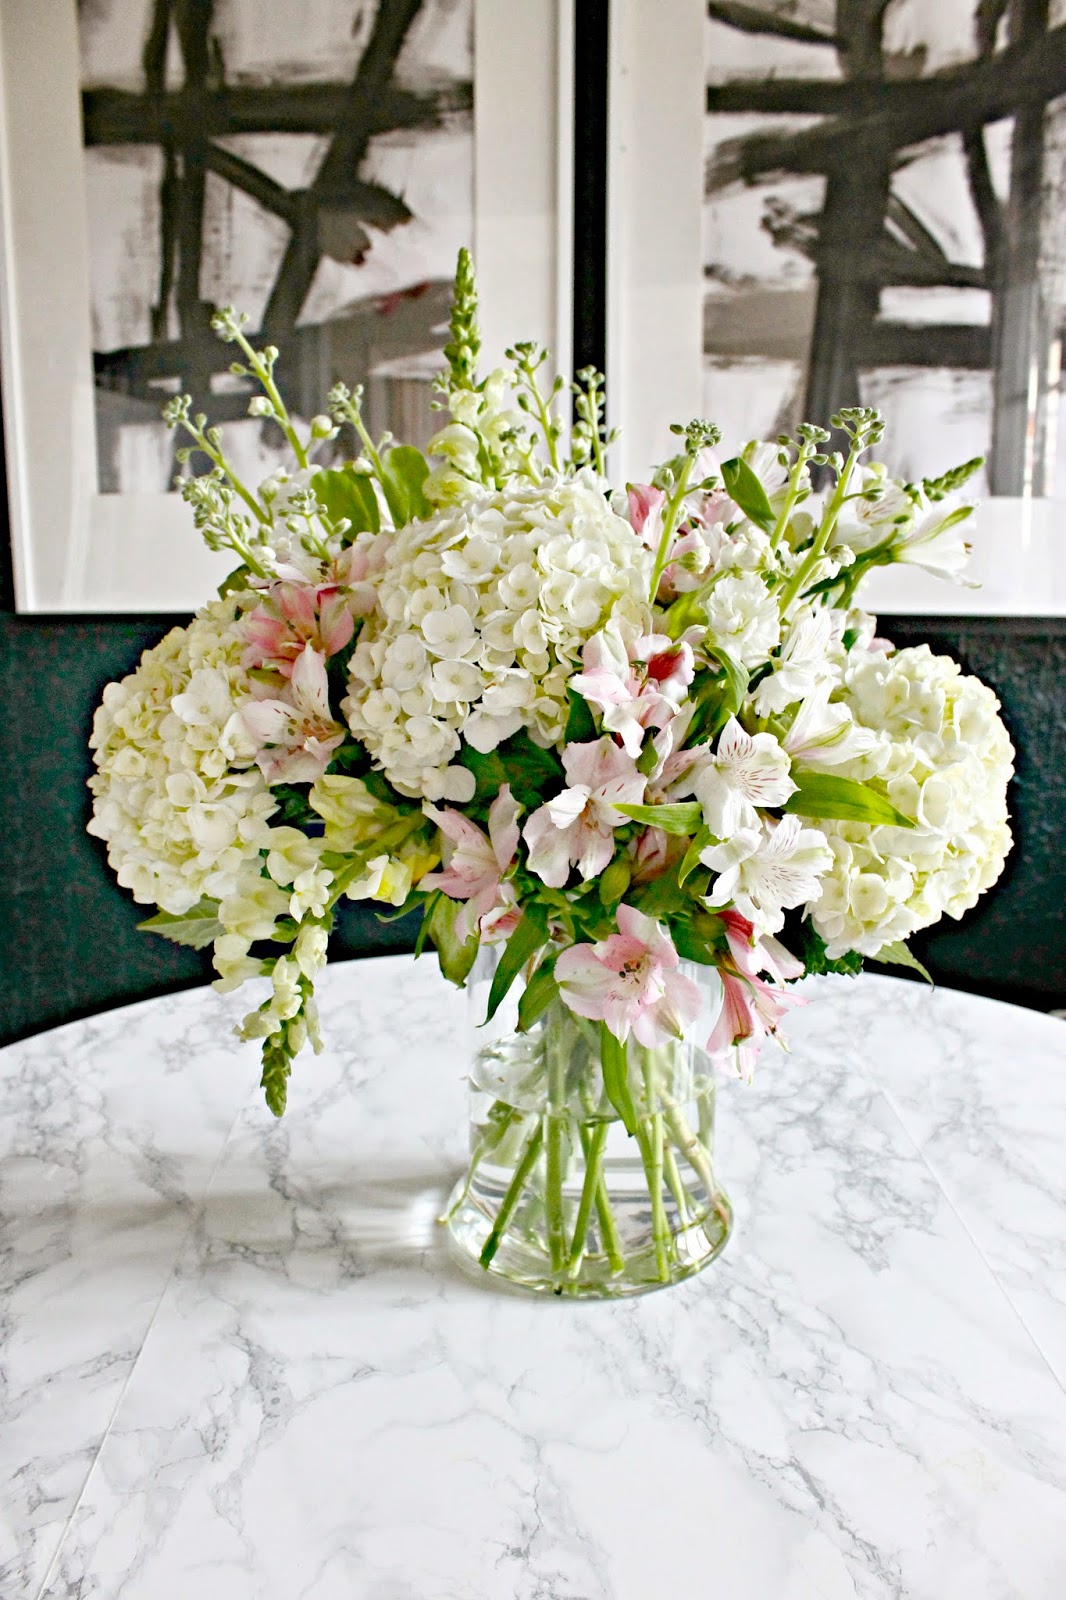 Flower arrangement tips tricks ideas for beginners